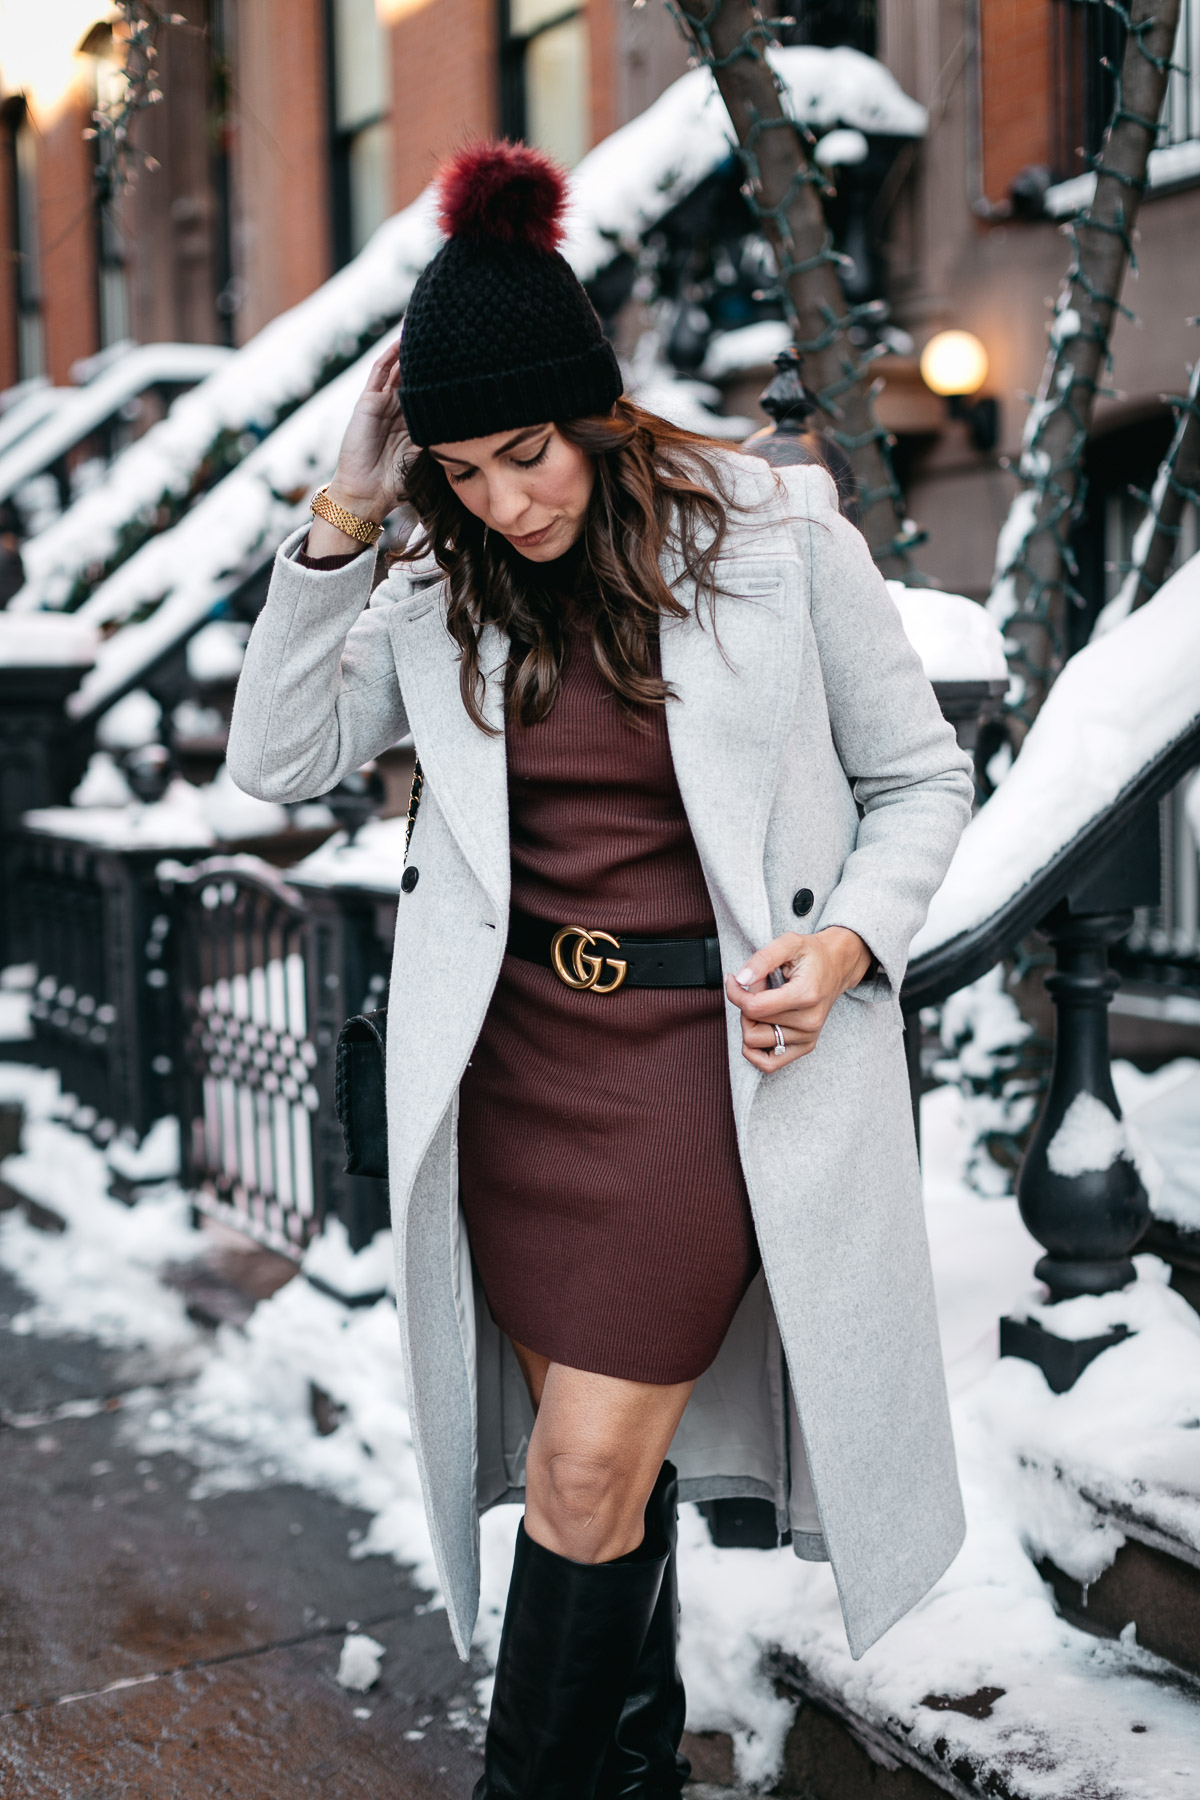 Blogger Amanda from A Glam Lifestyle wears burgundy sweater dress accessorized with Gucci Double G belt in Greenwich Village New York City during NYFW Spring 2017